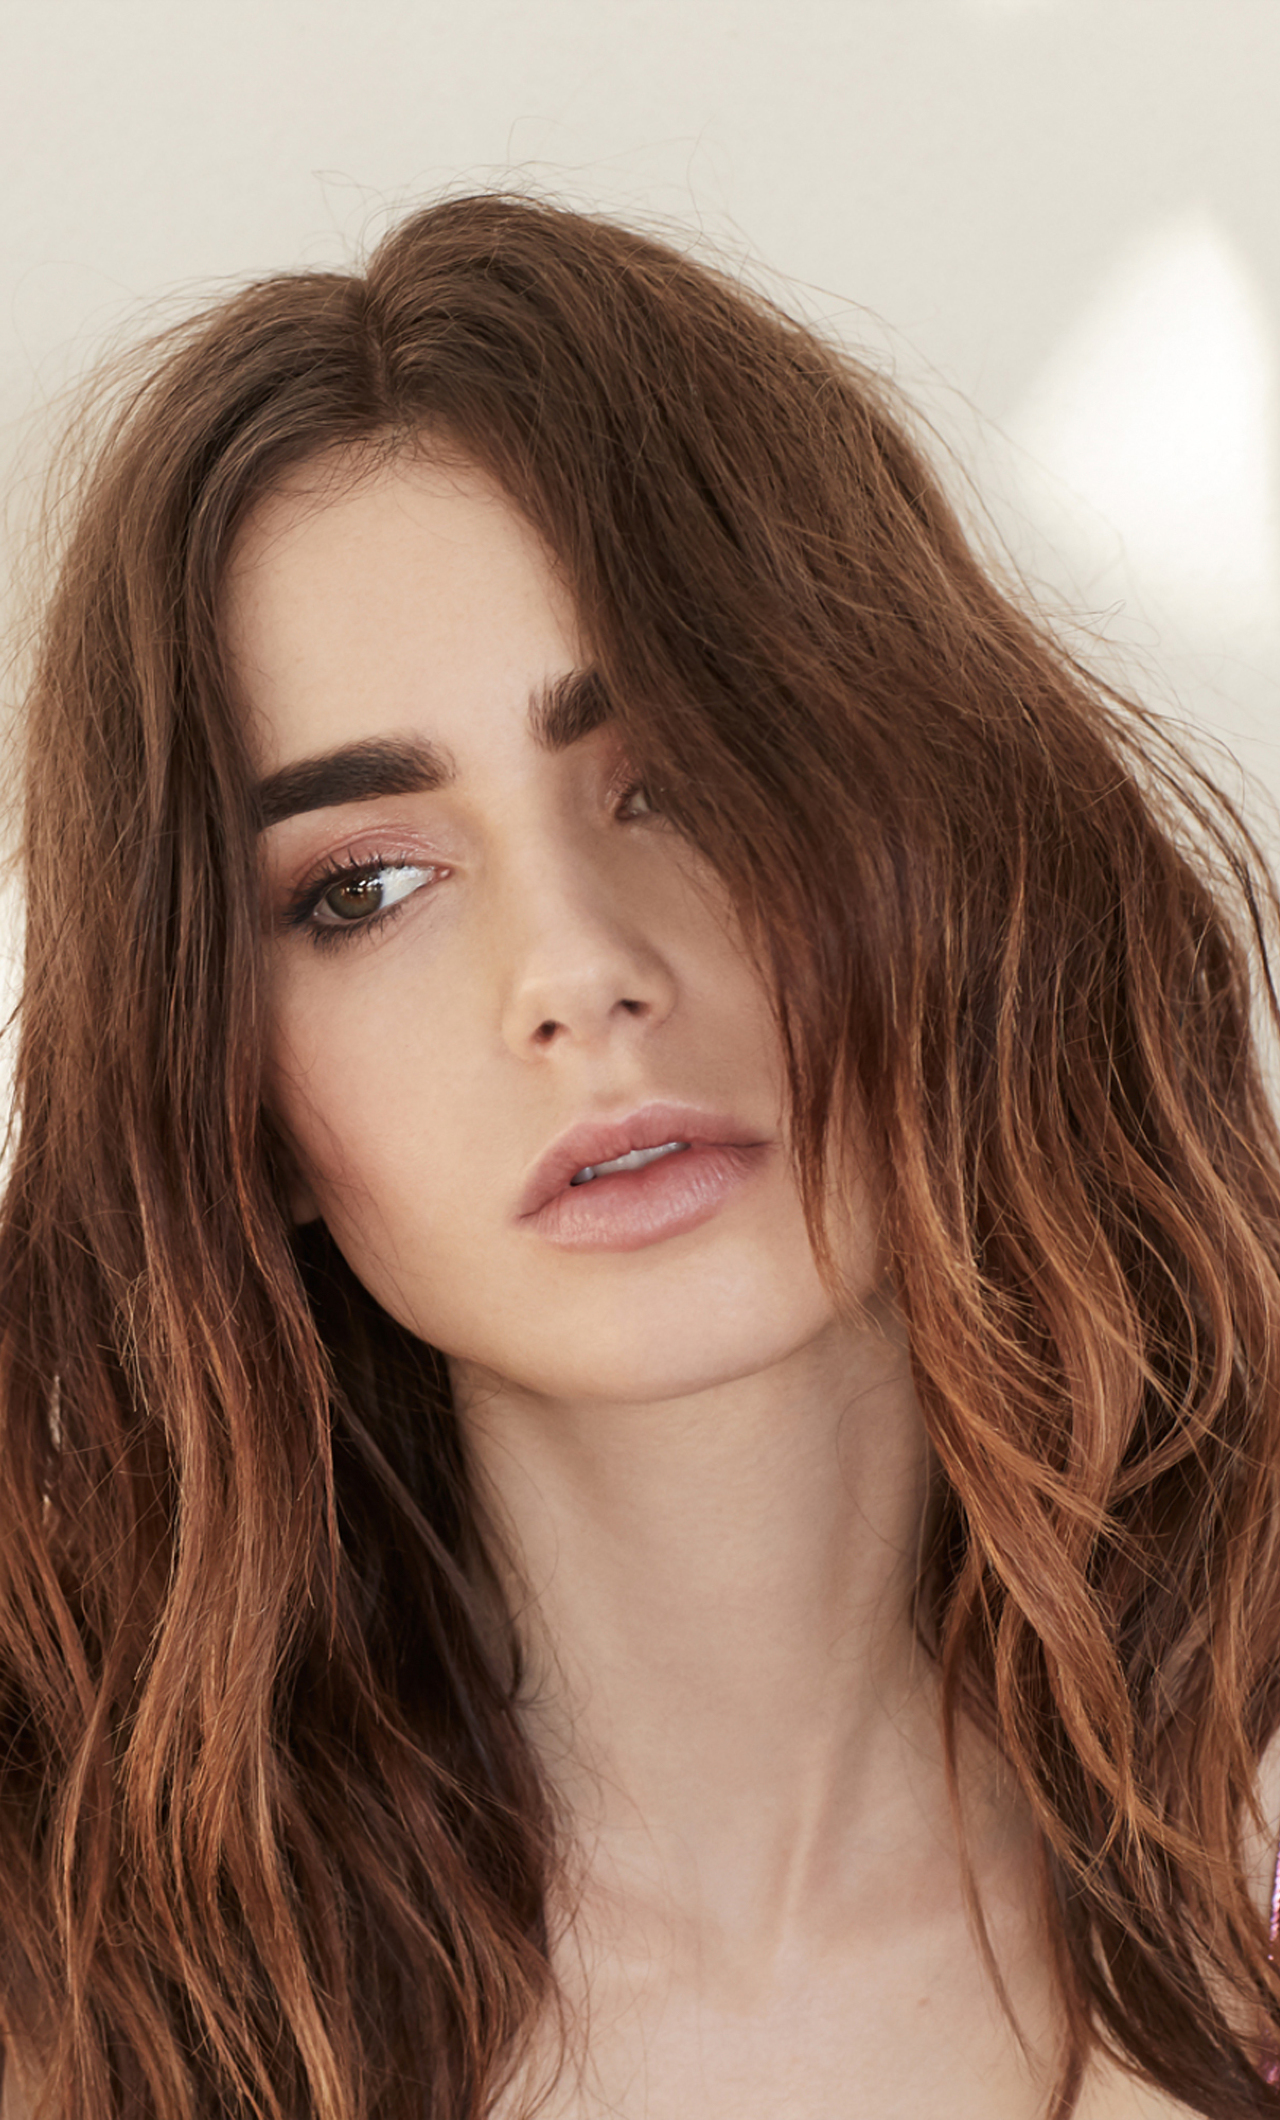 download lily collins for grazia uk magazine 1280x2120 resolution